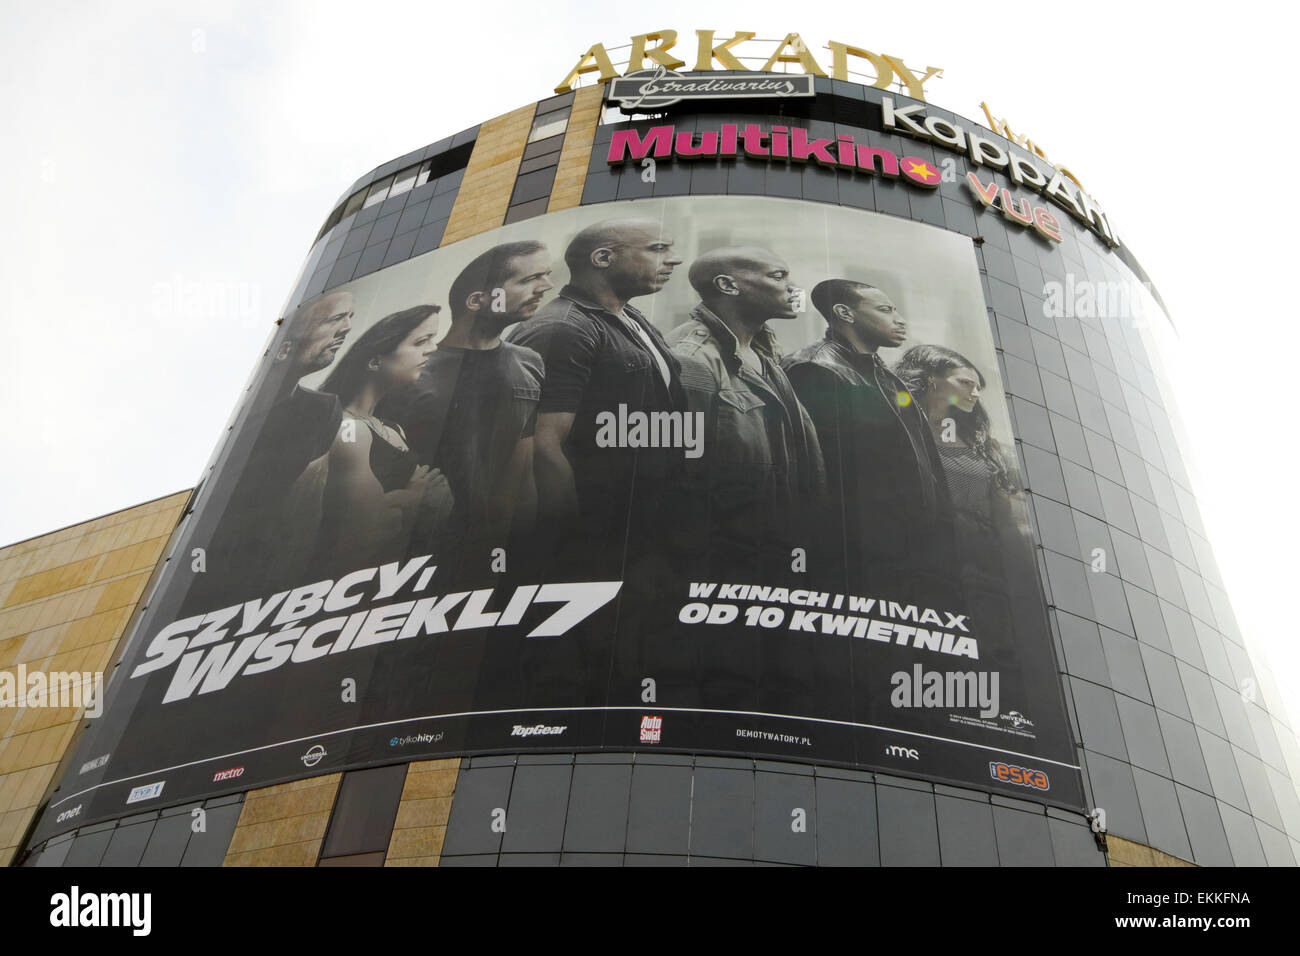 Wroclaw, Poland. 11th April, 2015. Big poster advertising 'Fast and Furious 7' movie on facade of Arkady - Stock Image